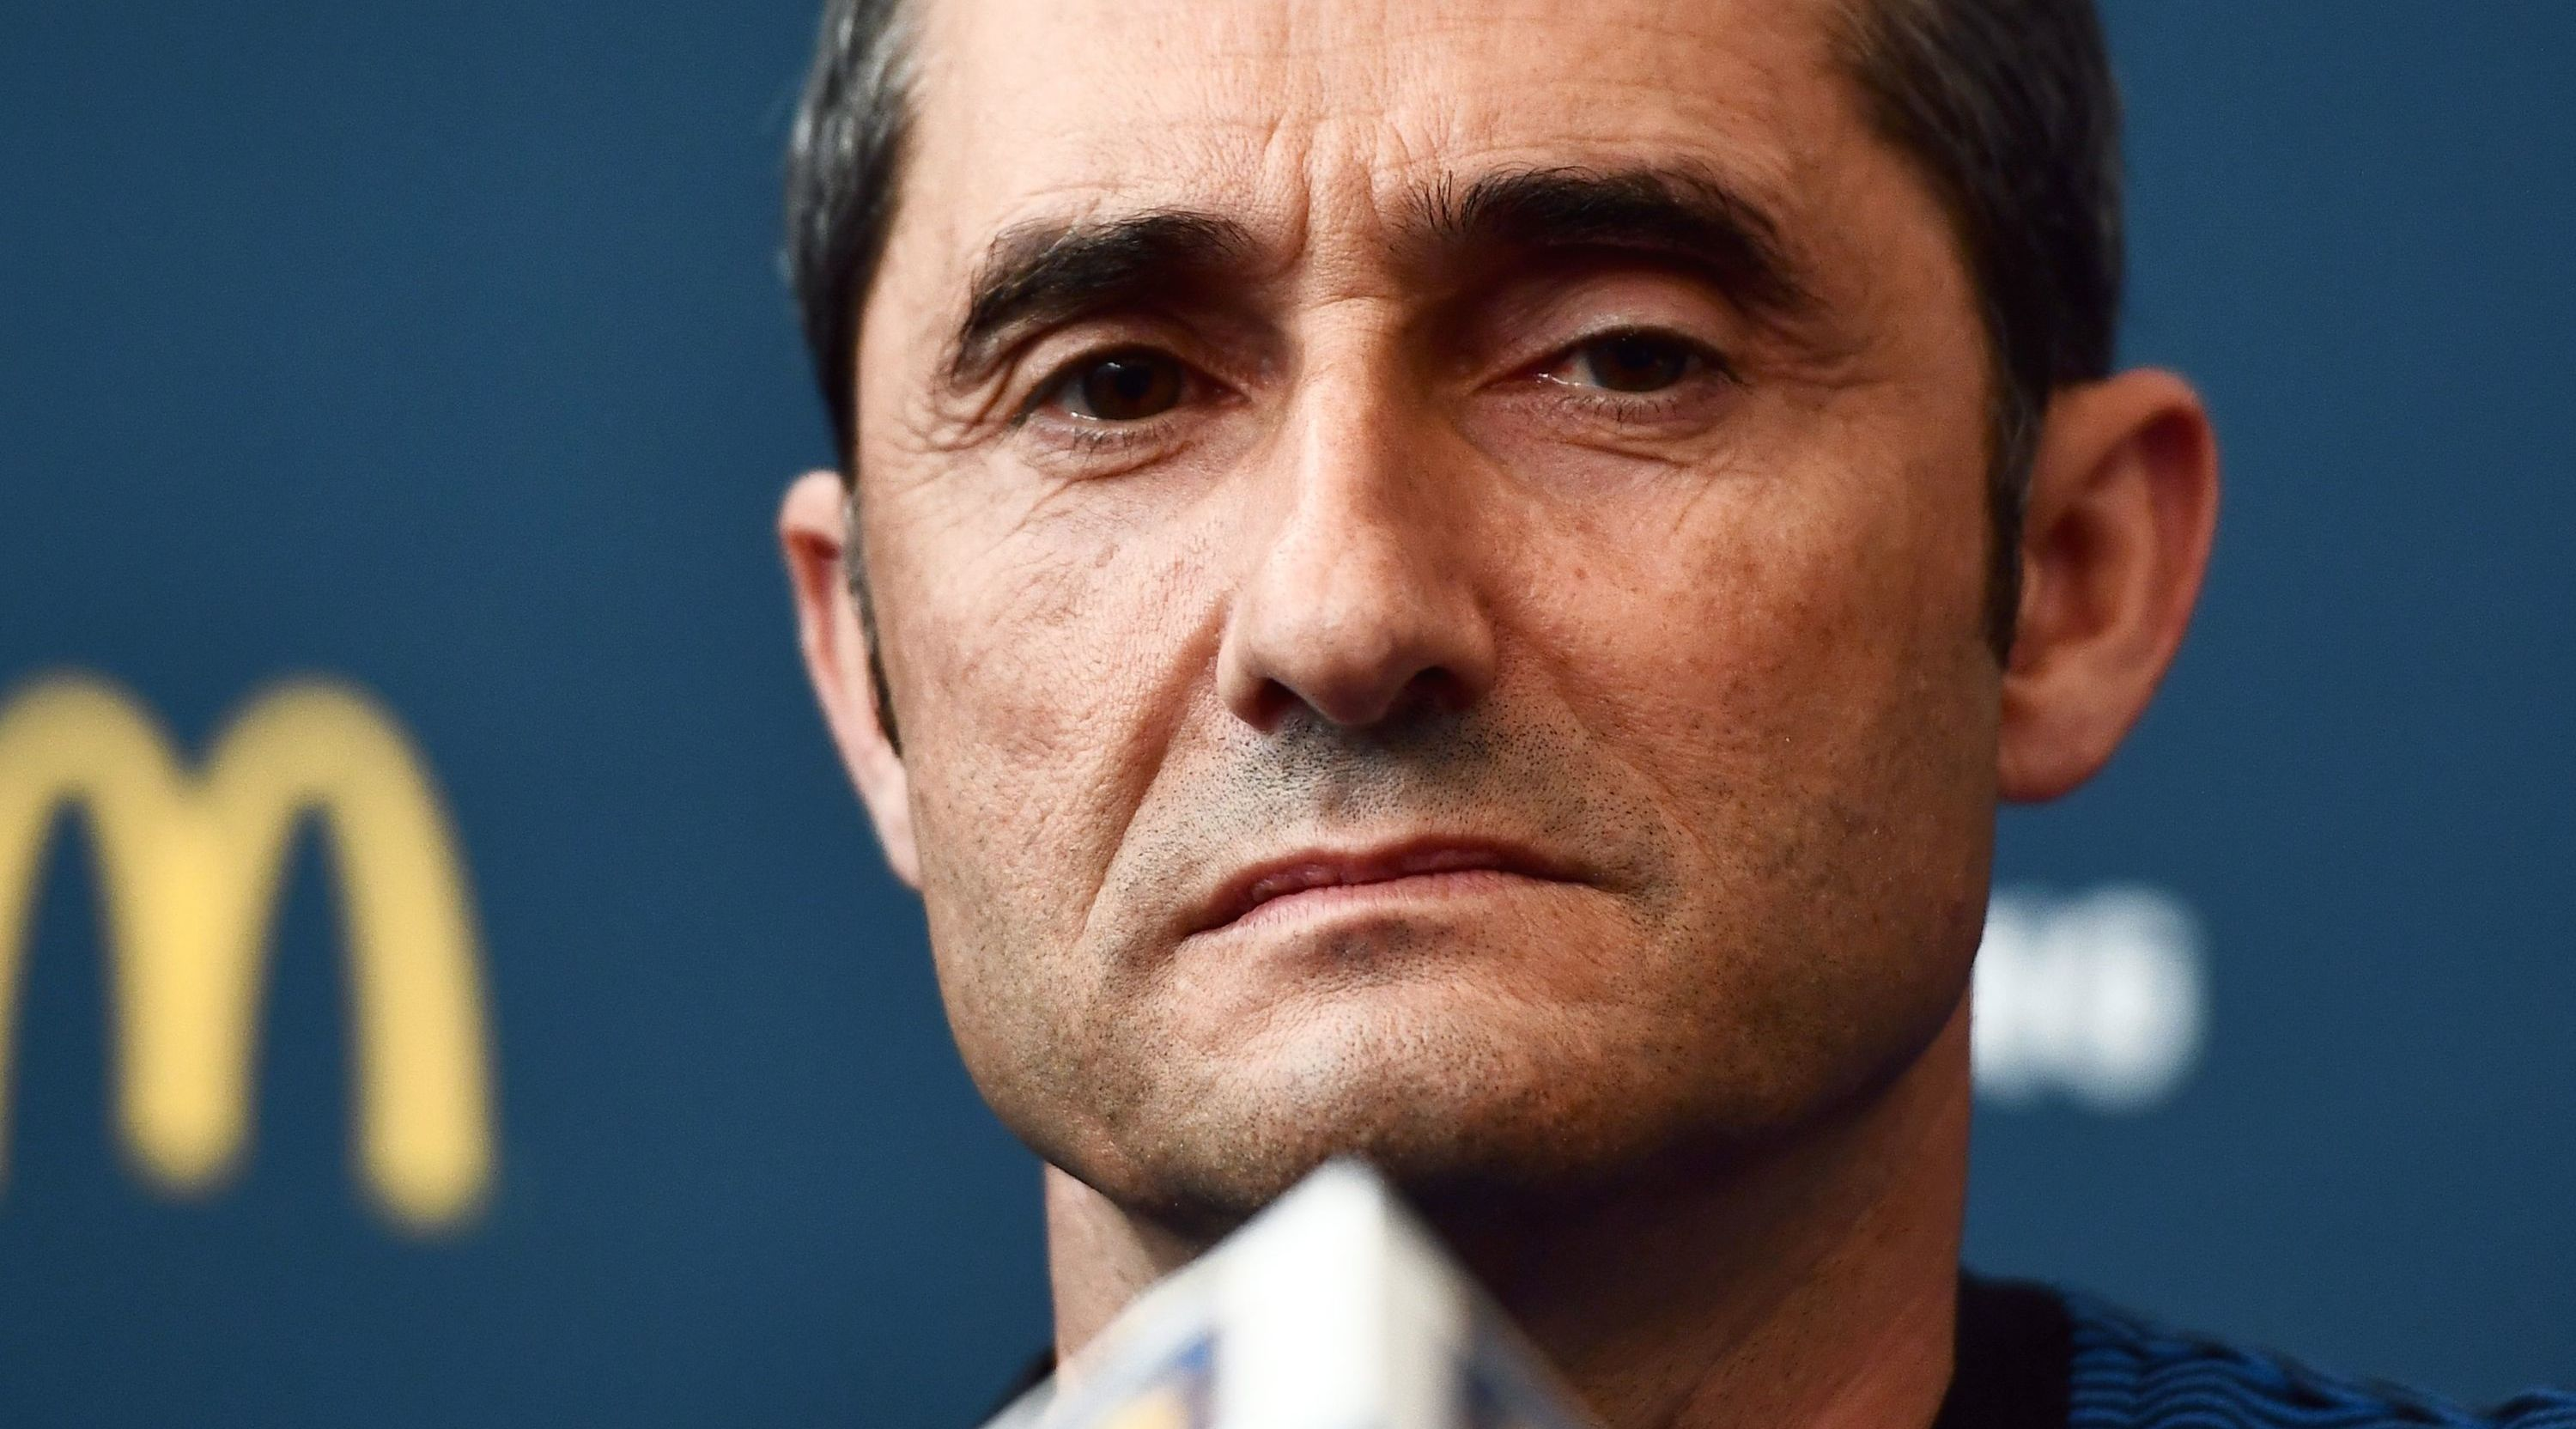 Barcelona's coach Ernesto Valverde speaks during a press conference at the Red Bull Arena in Harrison, New Jersey, on July 21, 2017, a day before his team's match against Juventus FC. / AFP PHOTO / Jewel SAMAD (Photo credit should read JEWEL SAMAD/AFP/Getty Images)